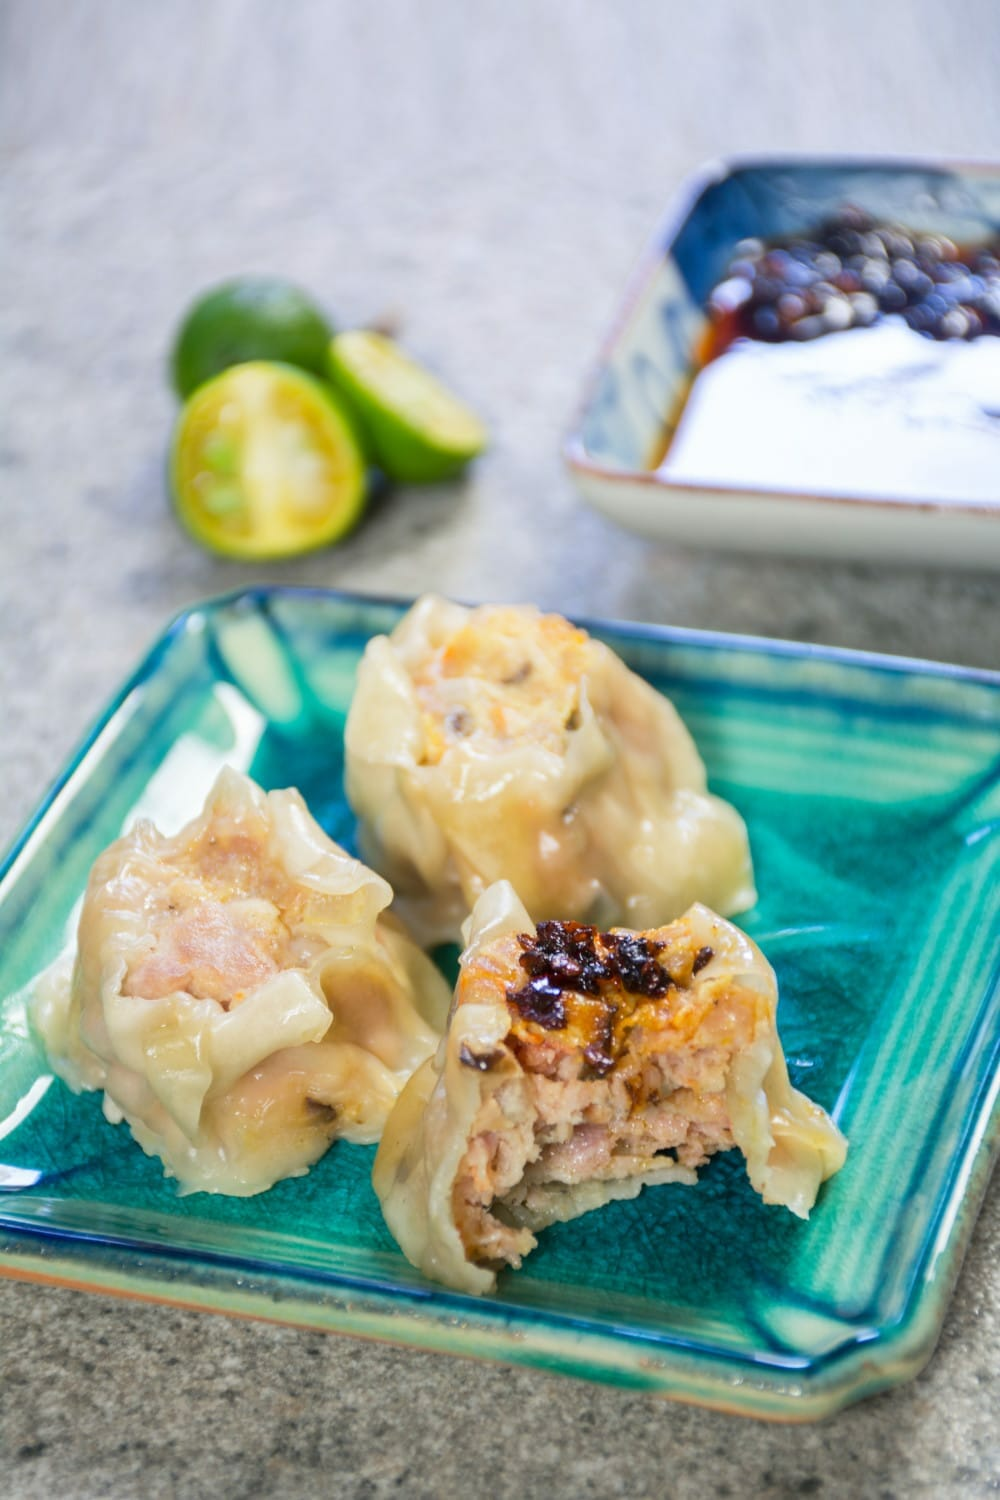 Pork Siomai Asian Wonton